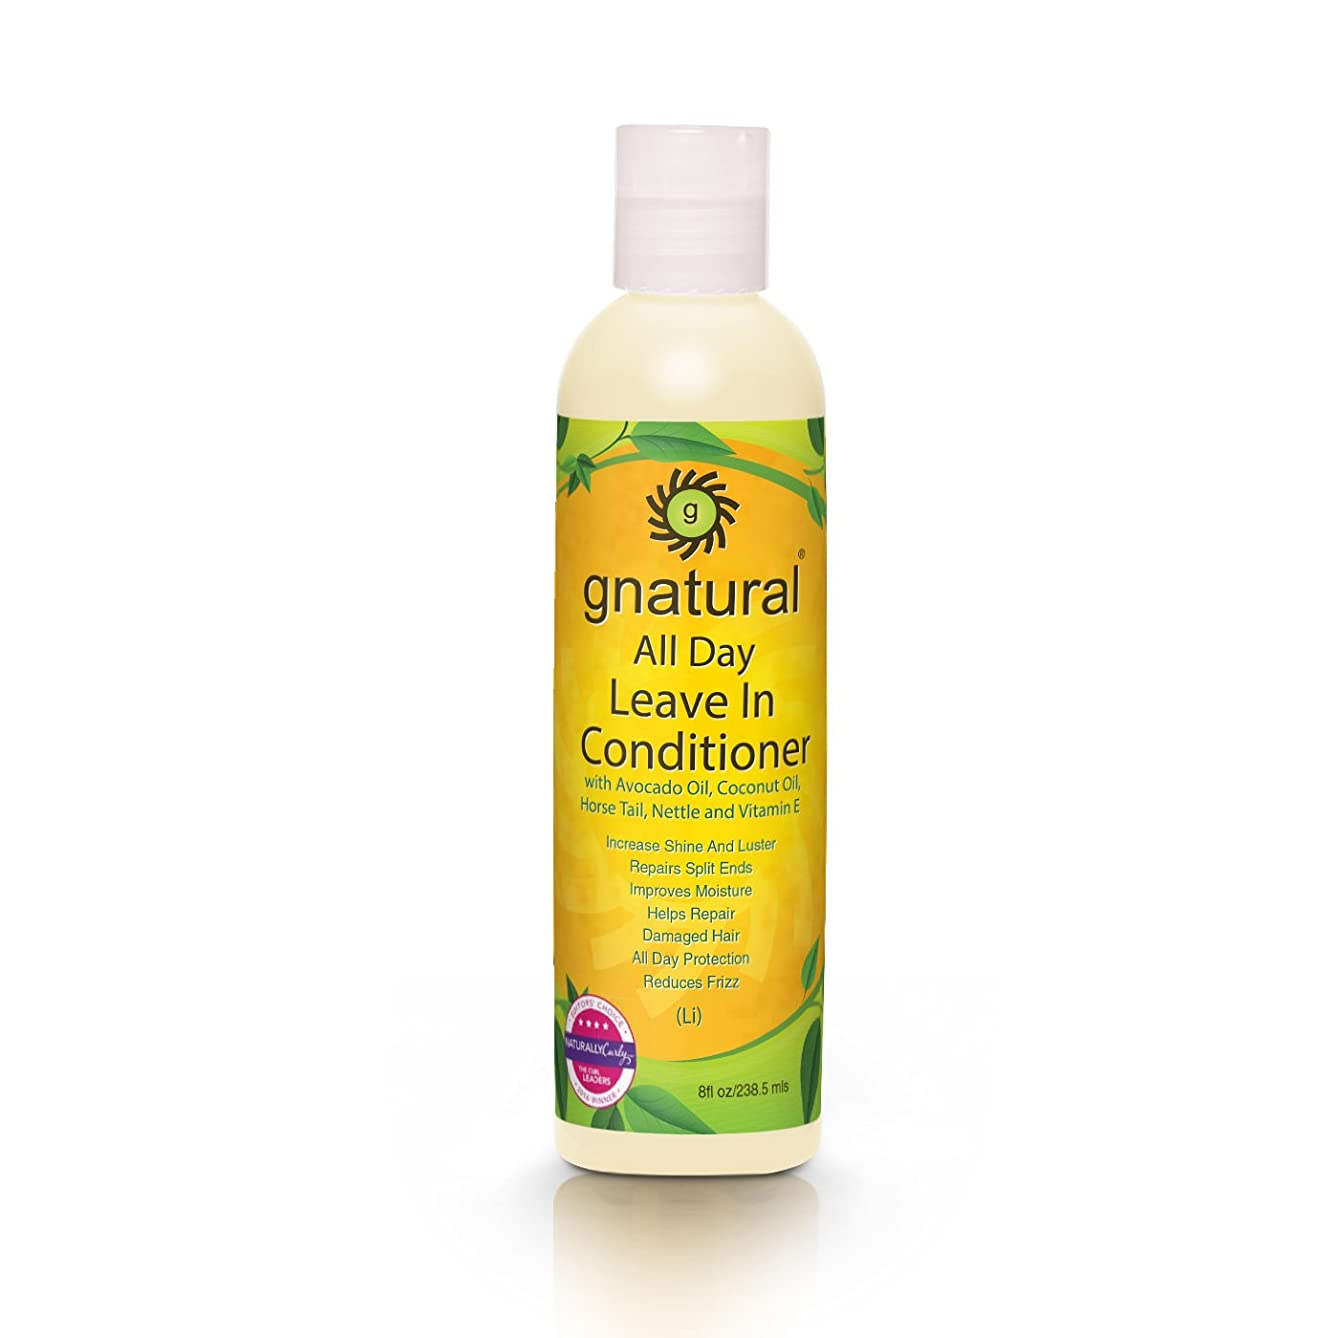 Gnatural All Day Leave-In Conditioner - Coconut Oil, Avocado Oil, Wheat Germ Oil, Grapeseed Oil, Nettles Extract, Horsetail Extract, Chamomile Extract That Gives Lush, Radiant Curls without Frizz 8oz